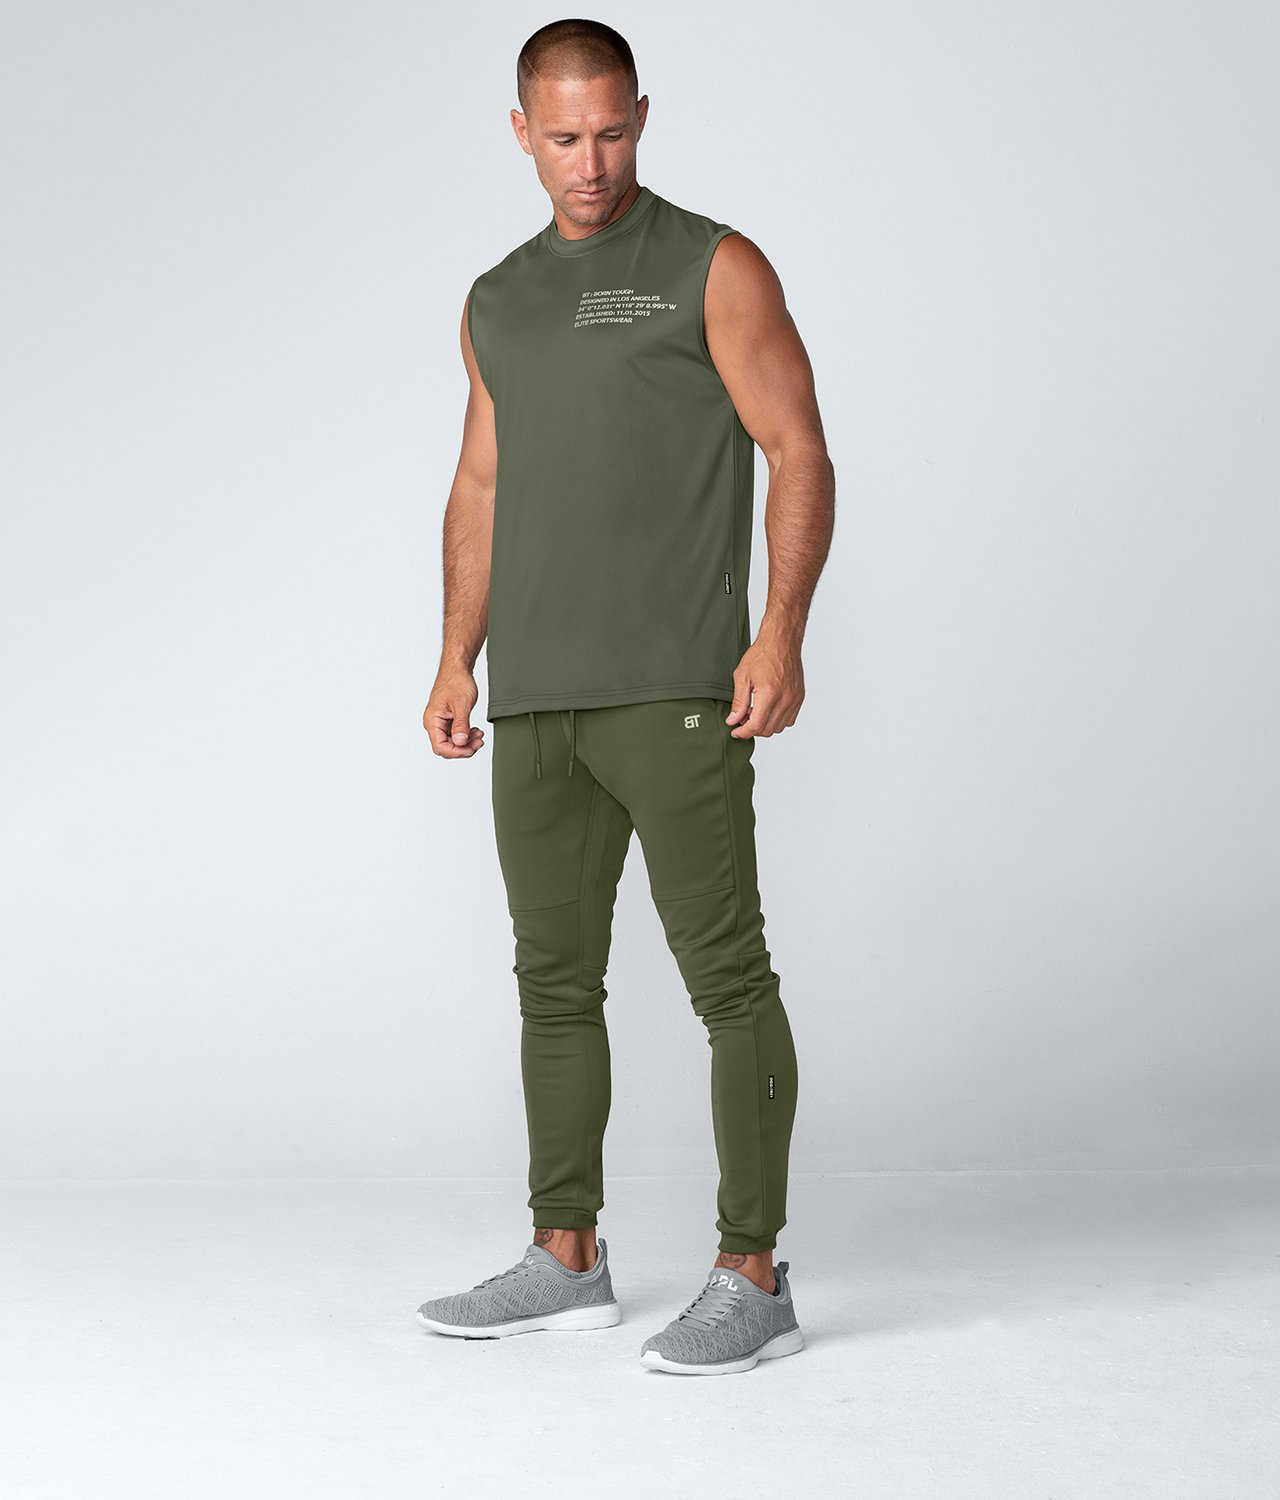 Born Tough United Kingdom Momentum Extended Back-Hem Sleeveless Fitted Tee Gym Workout Shirt For Men Military Green